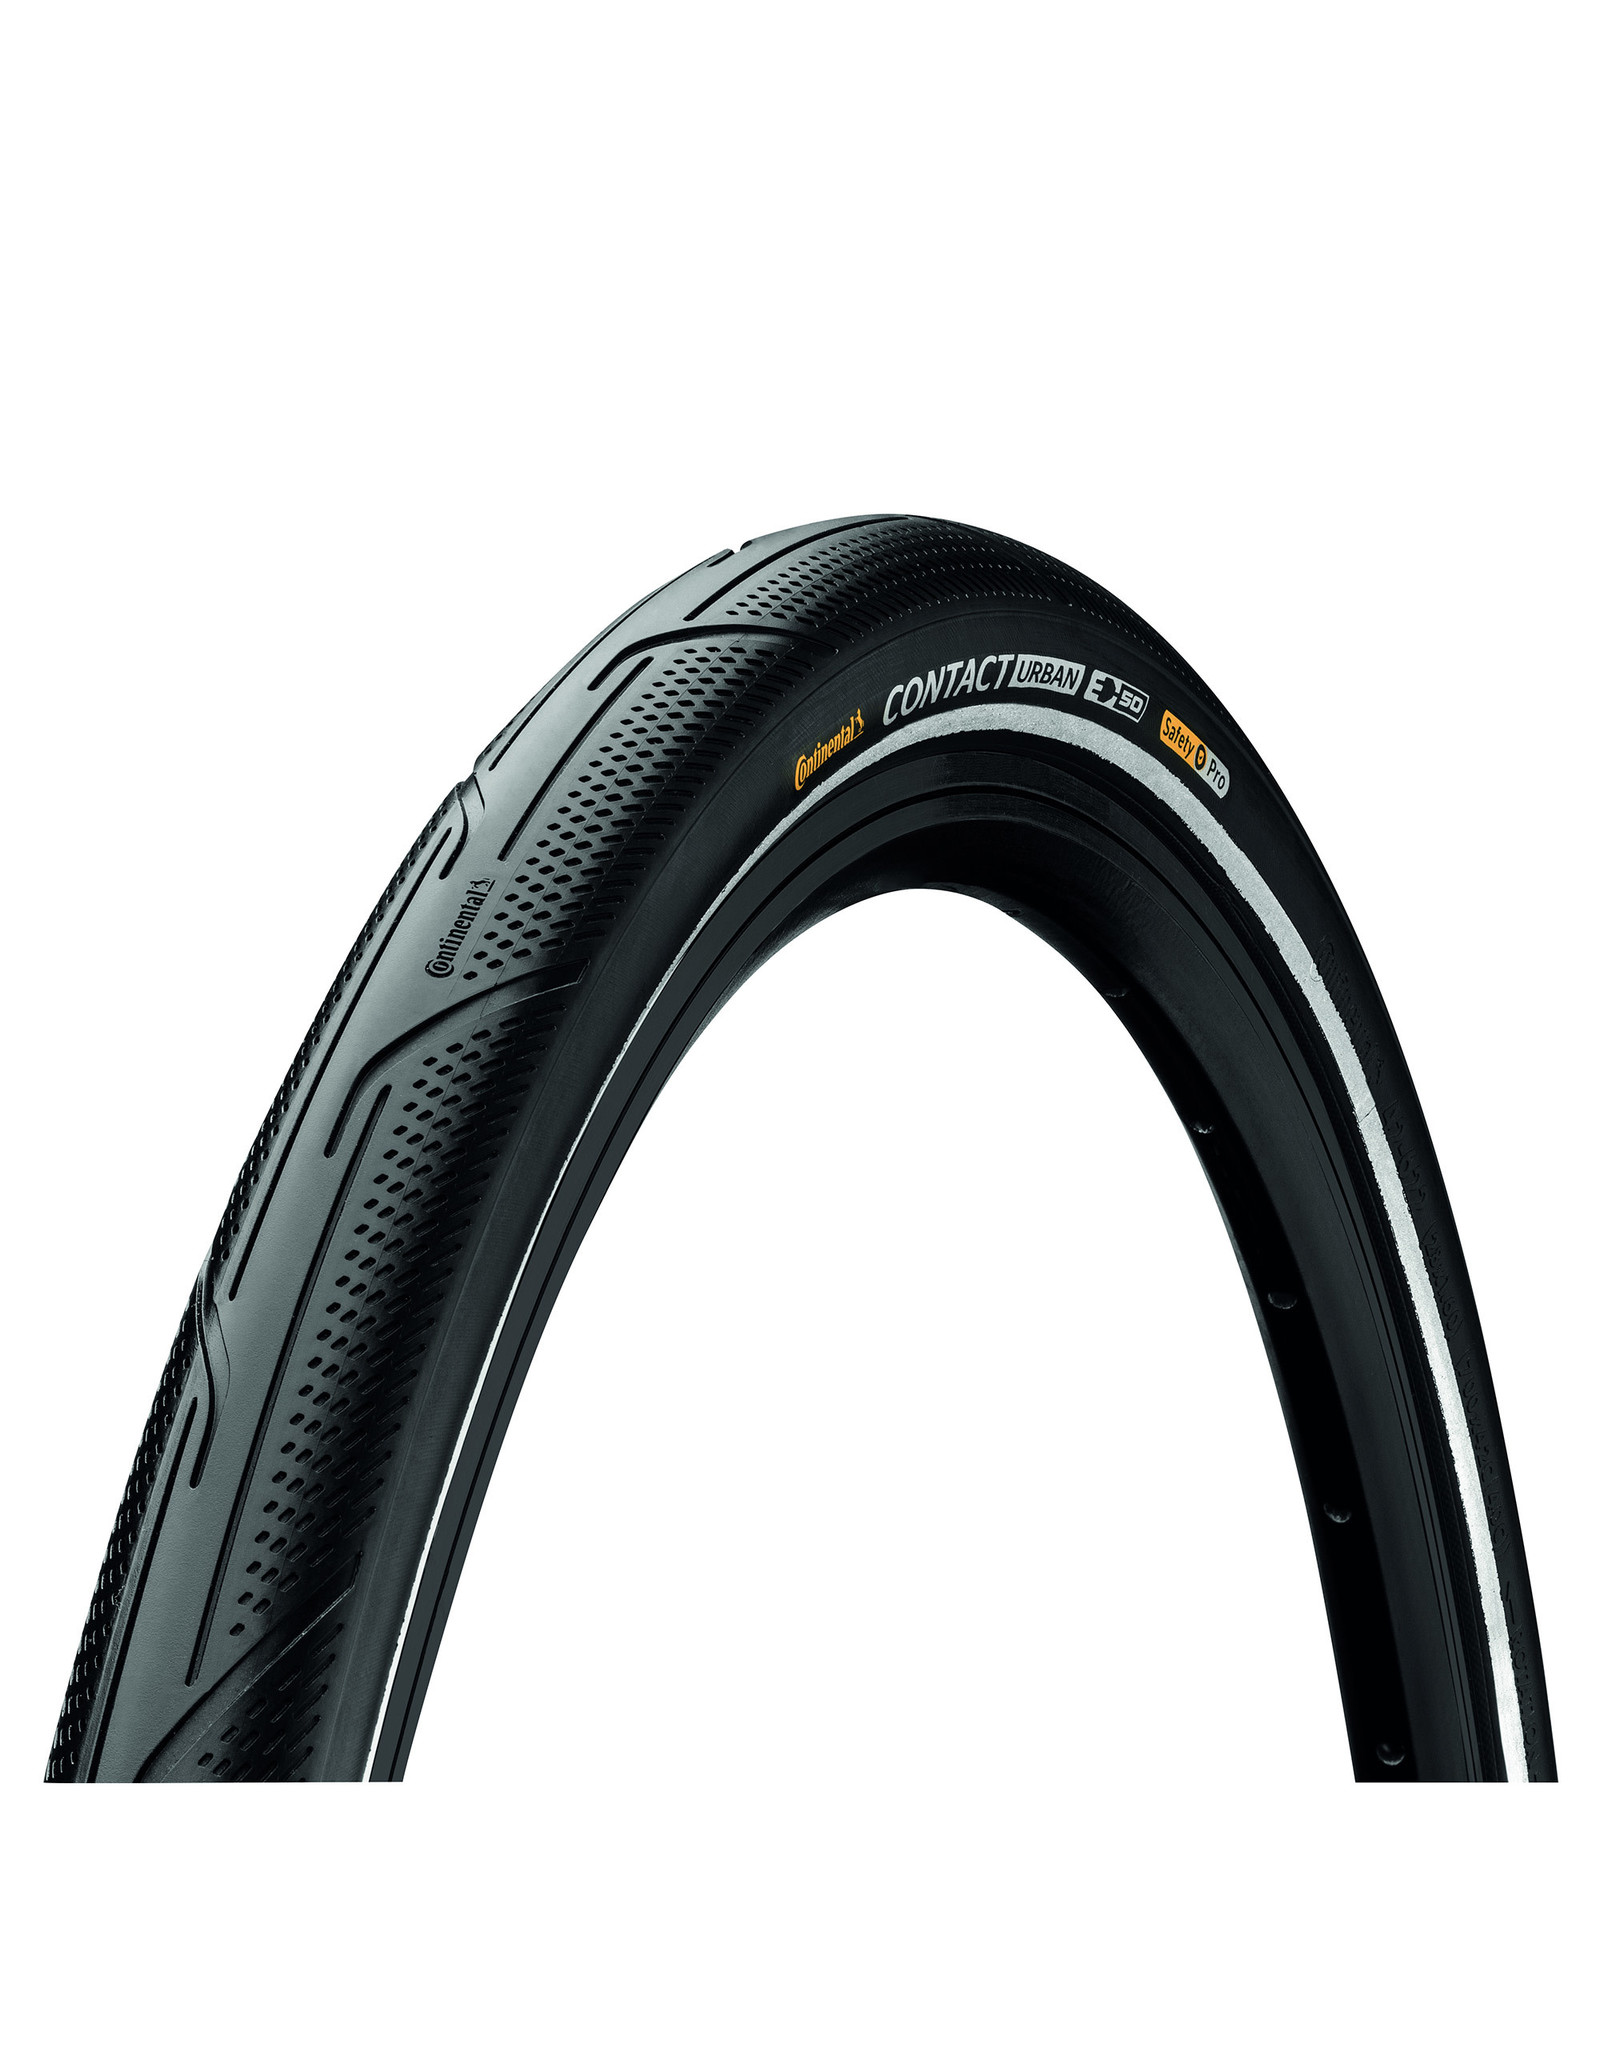 Continental Tyre Contact Urban 16 x 1.35